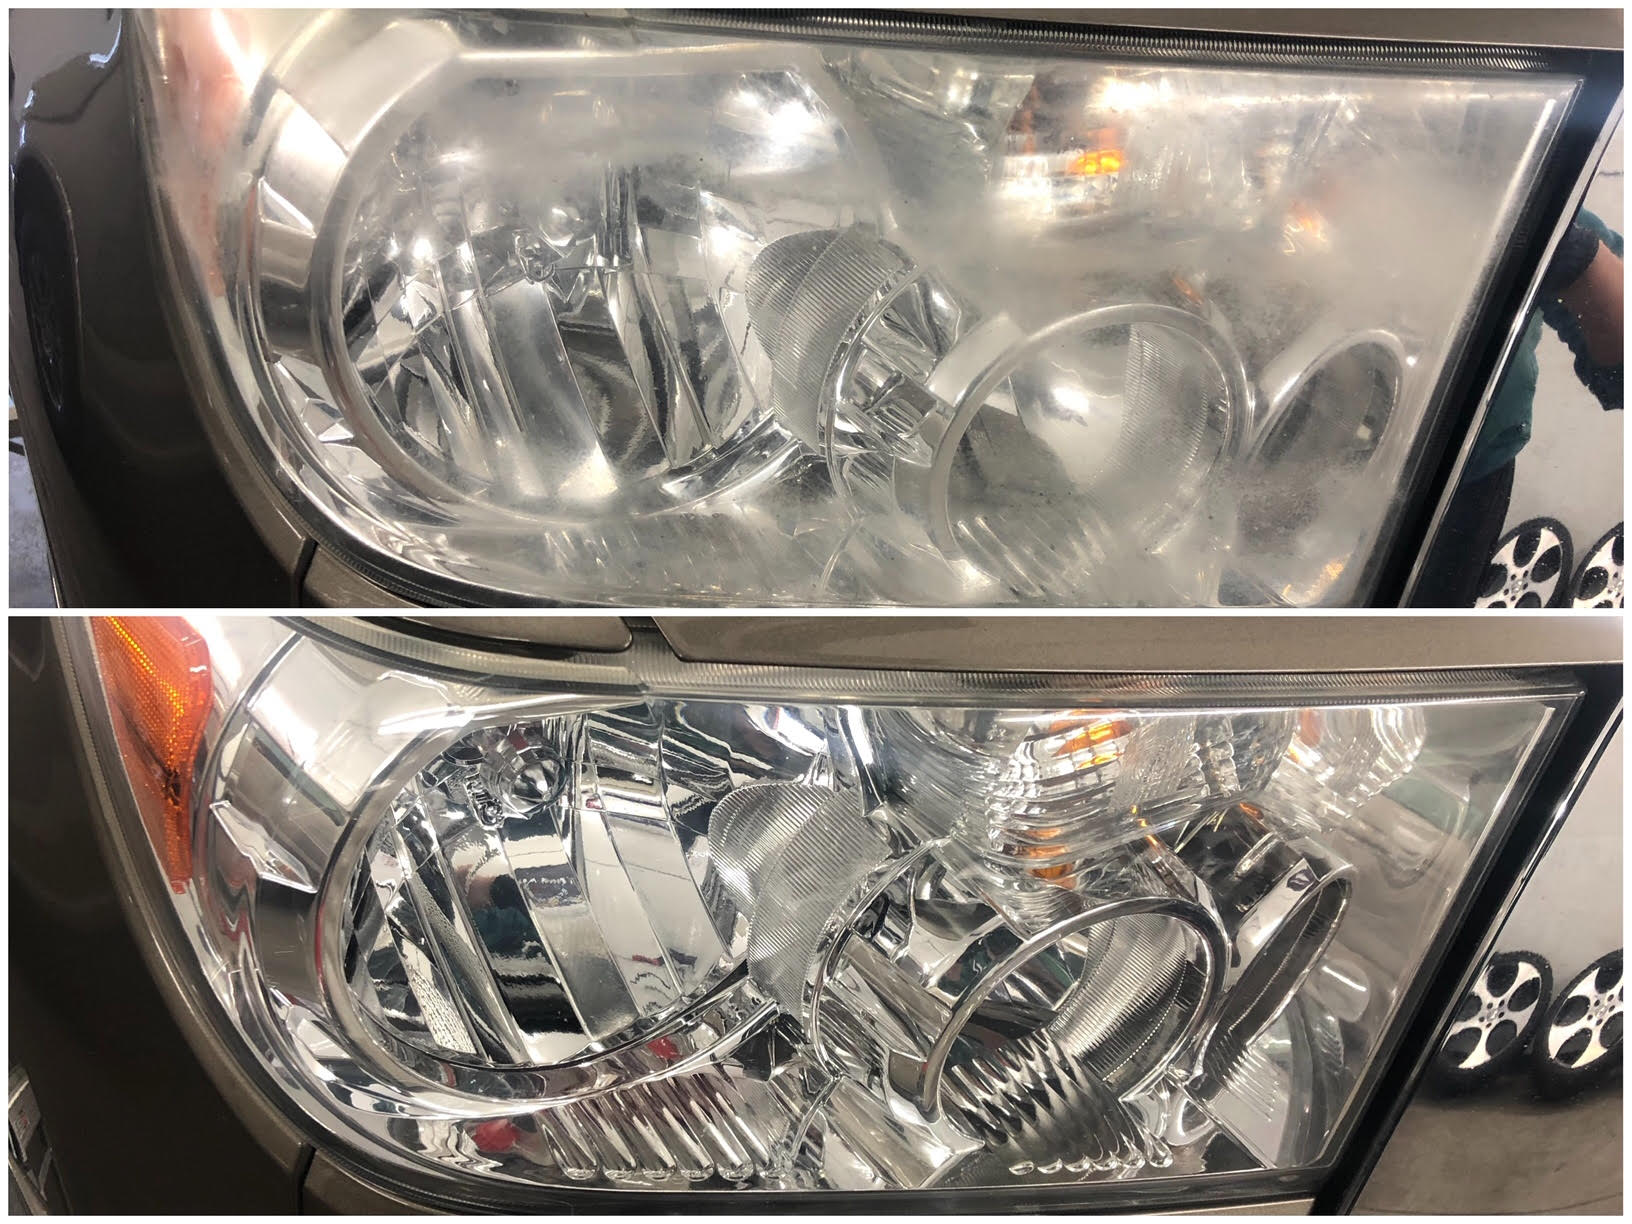 Headlight restoration; oxidized, hazy, dull and unclear lights restored to like-new condition and protected with our Shine Supply ceramic coating.